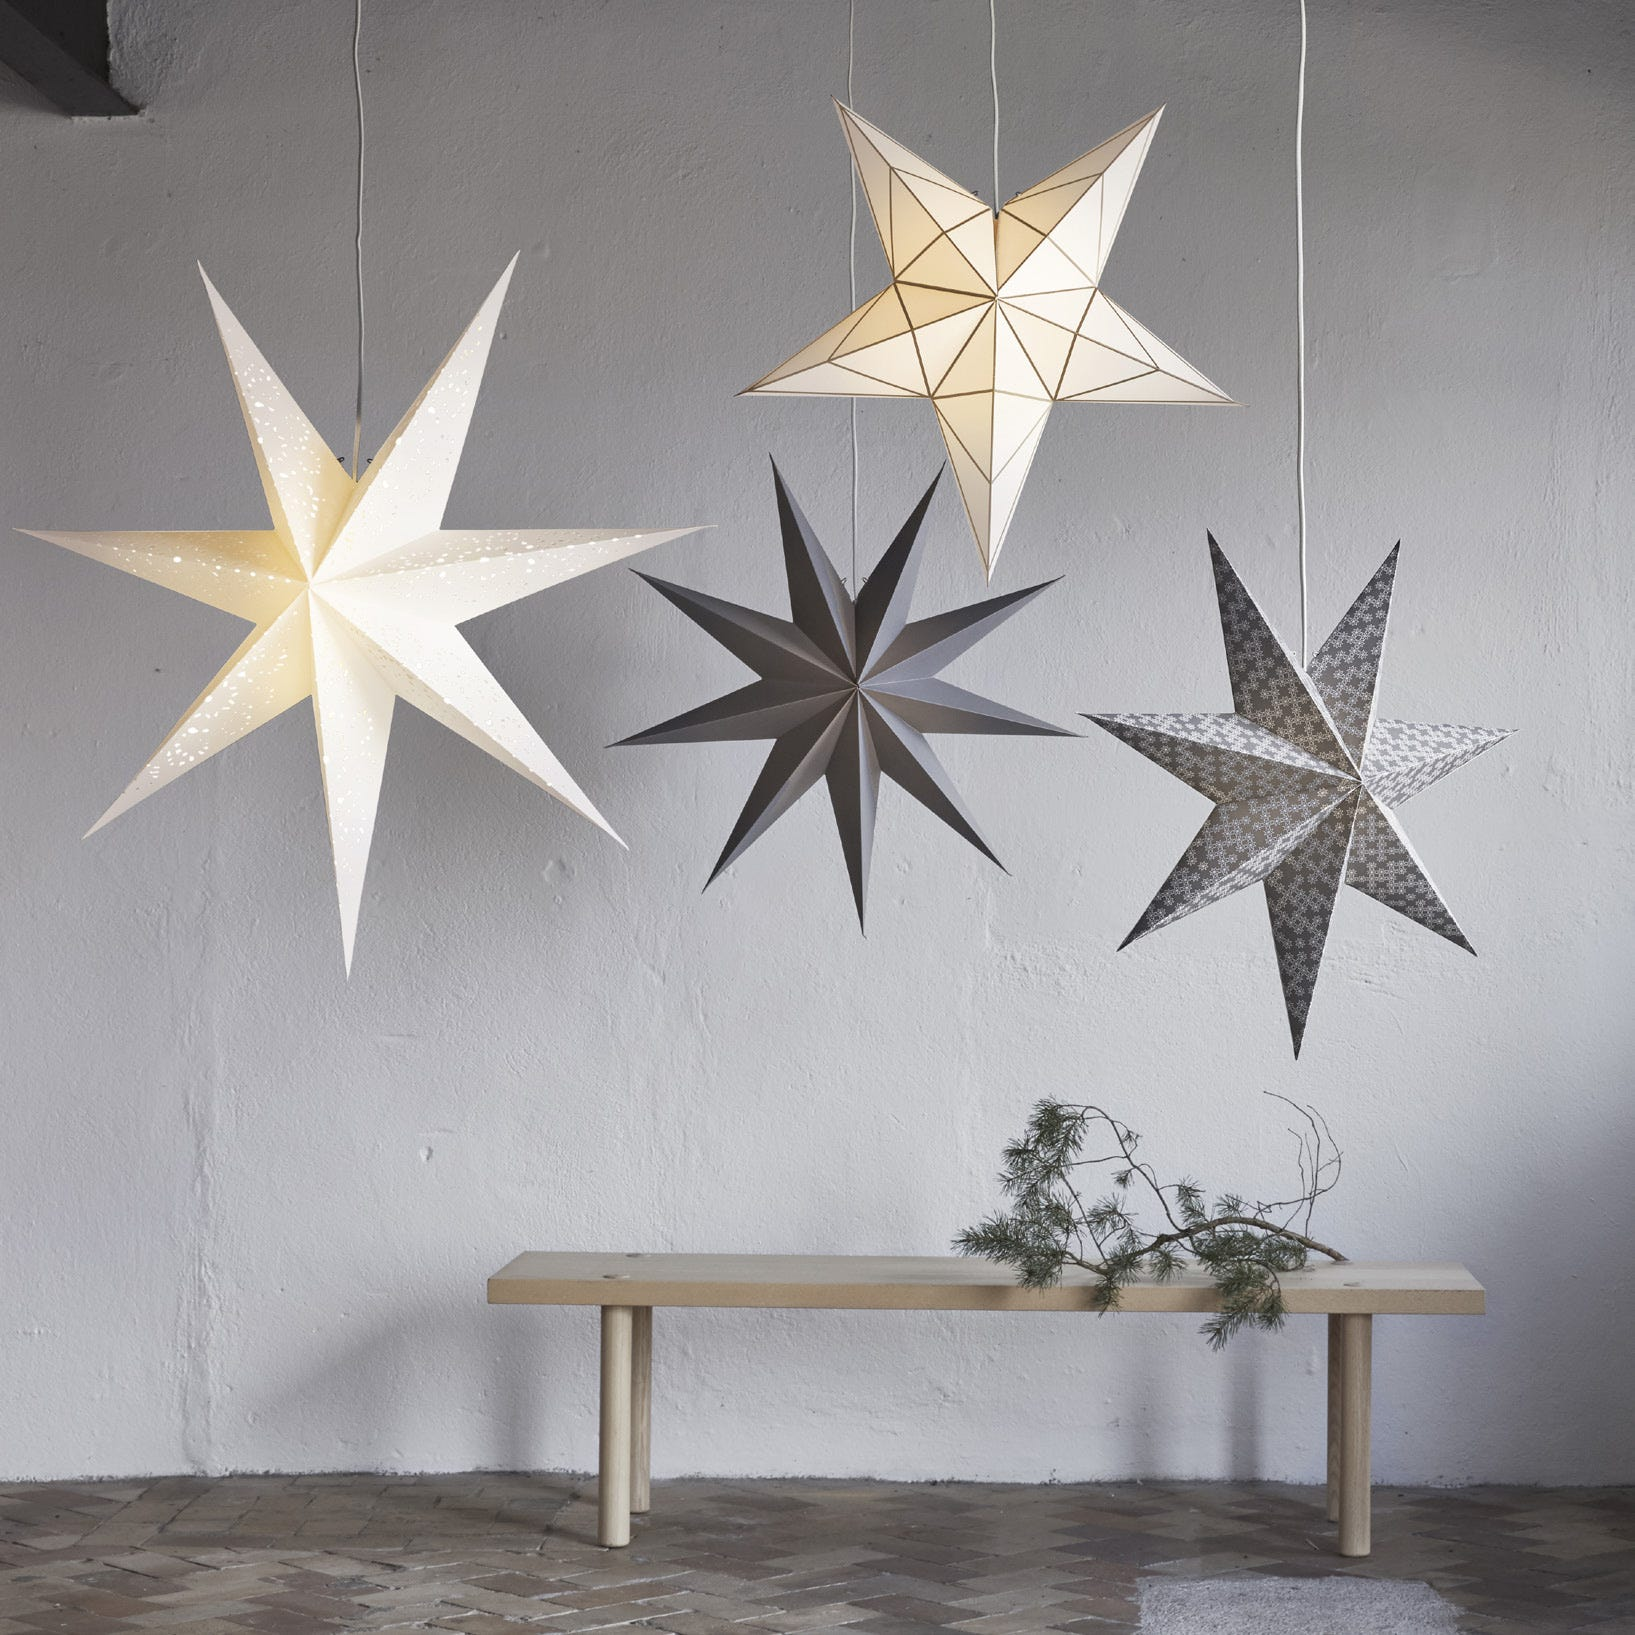 Ikea Holiday Catalog 2017 - Winter, Christmas Decor